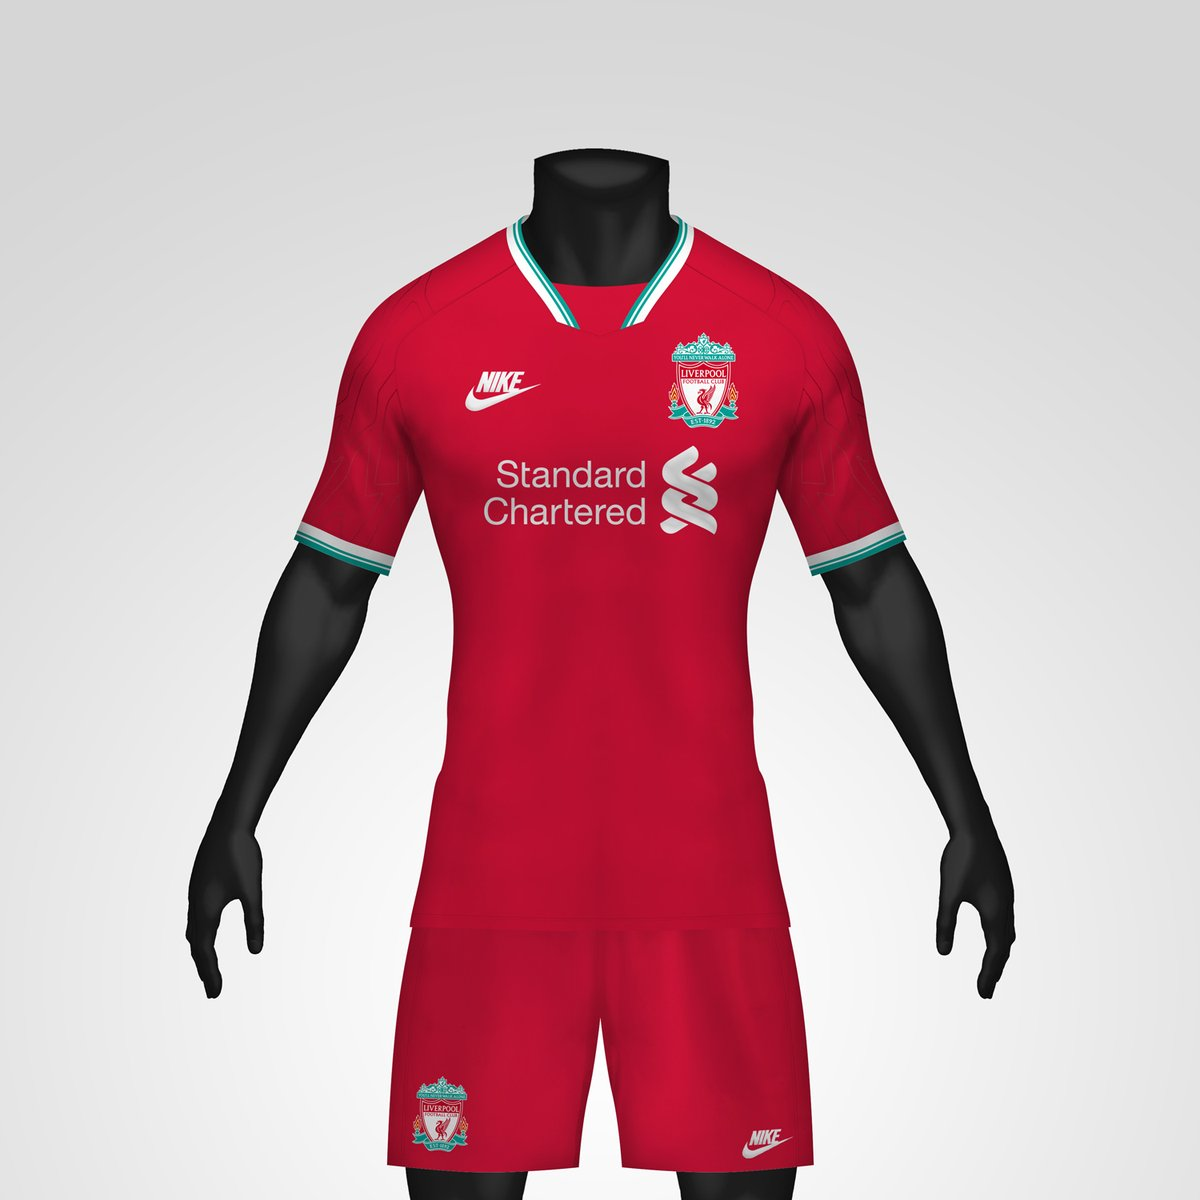 detailed look ad50f 31bec 1990s-Inspired Nike Liverpool 20-21 Concept Home Kit By ...